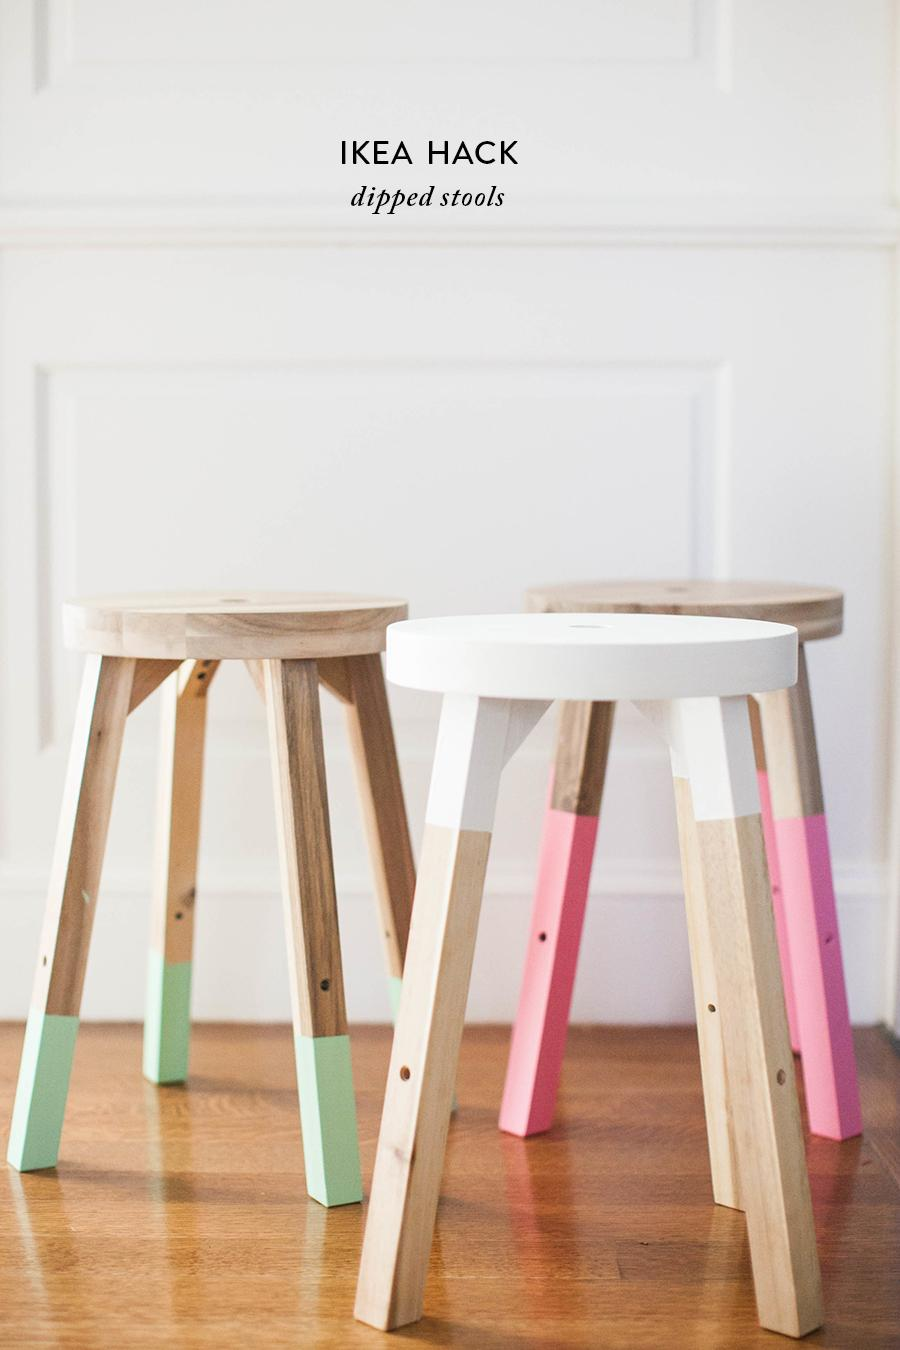 Tremendous On Trend Diy Dipped Stools For Half The Price Cjindustries Chair Design For Home Cjindustriesco